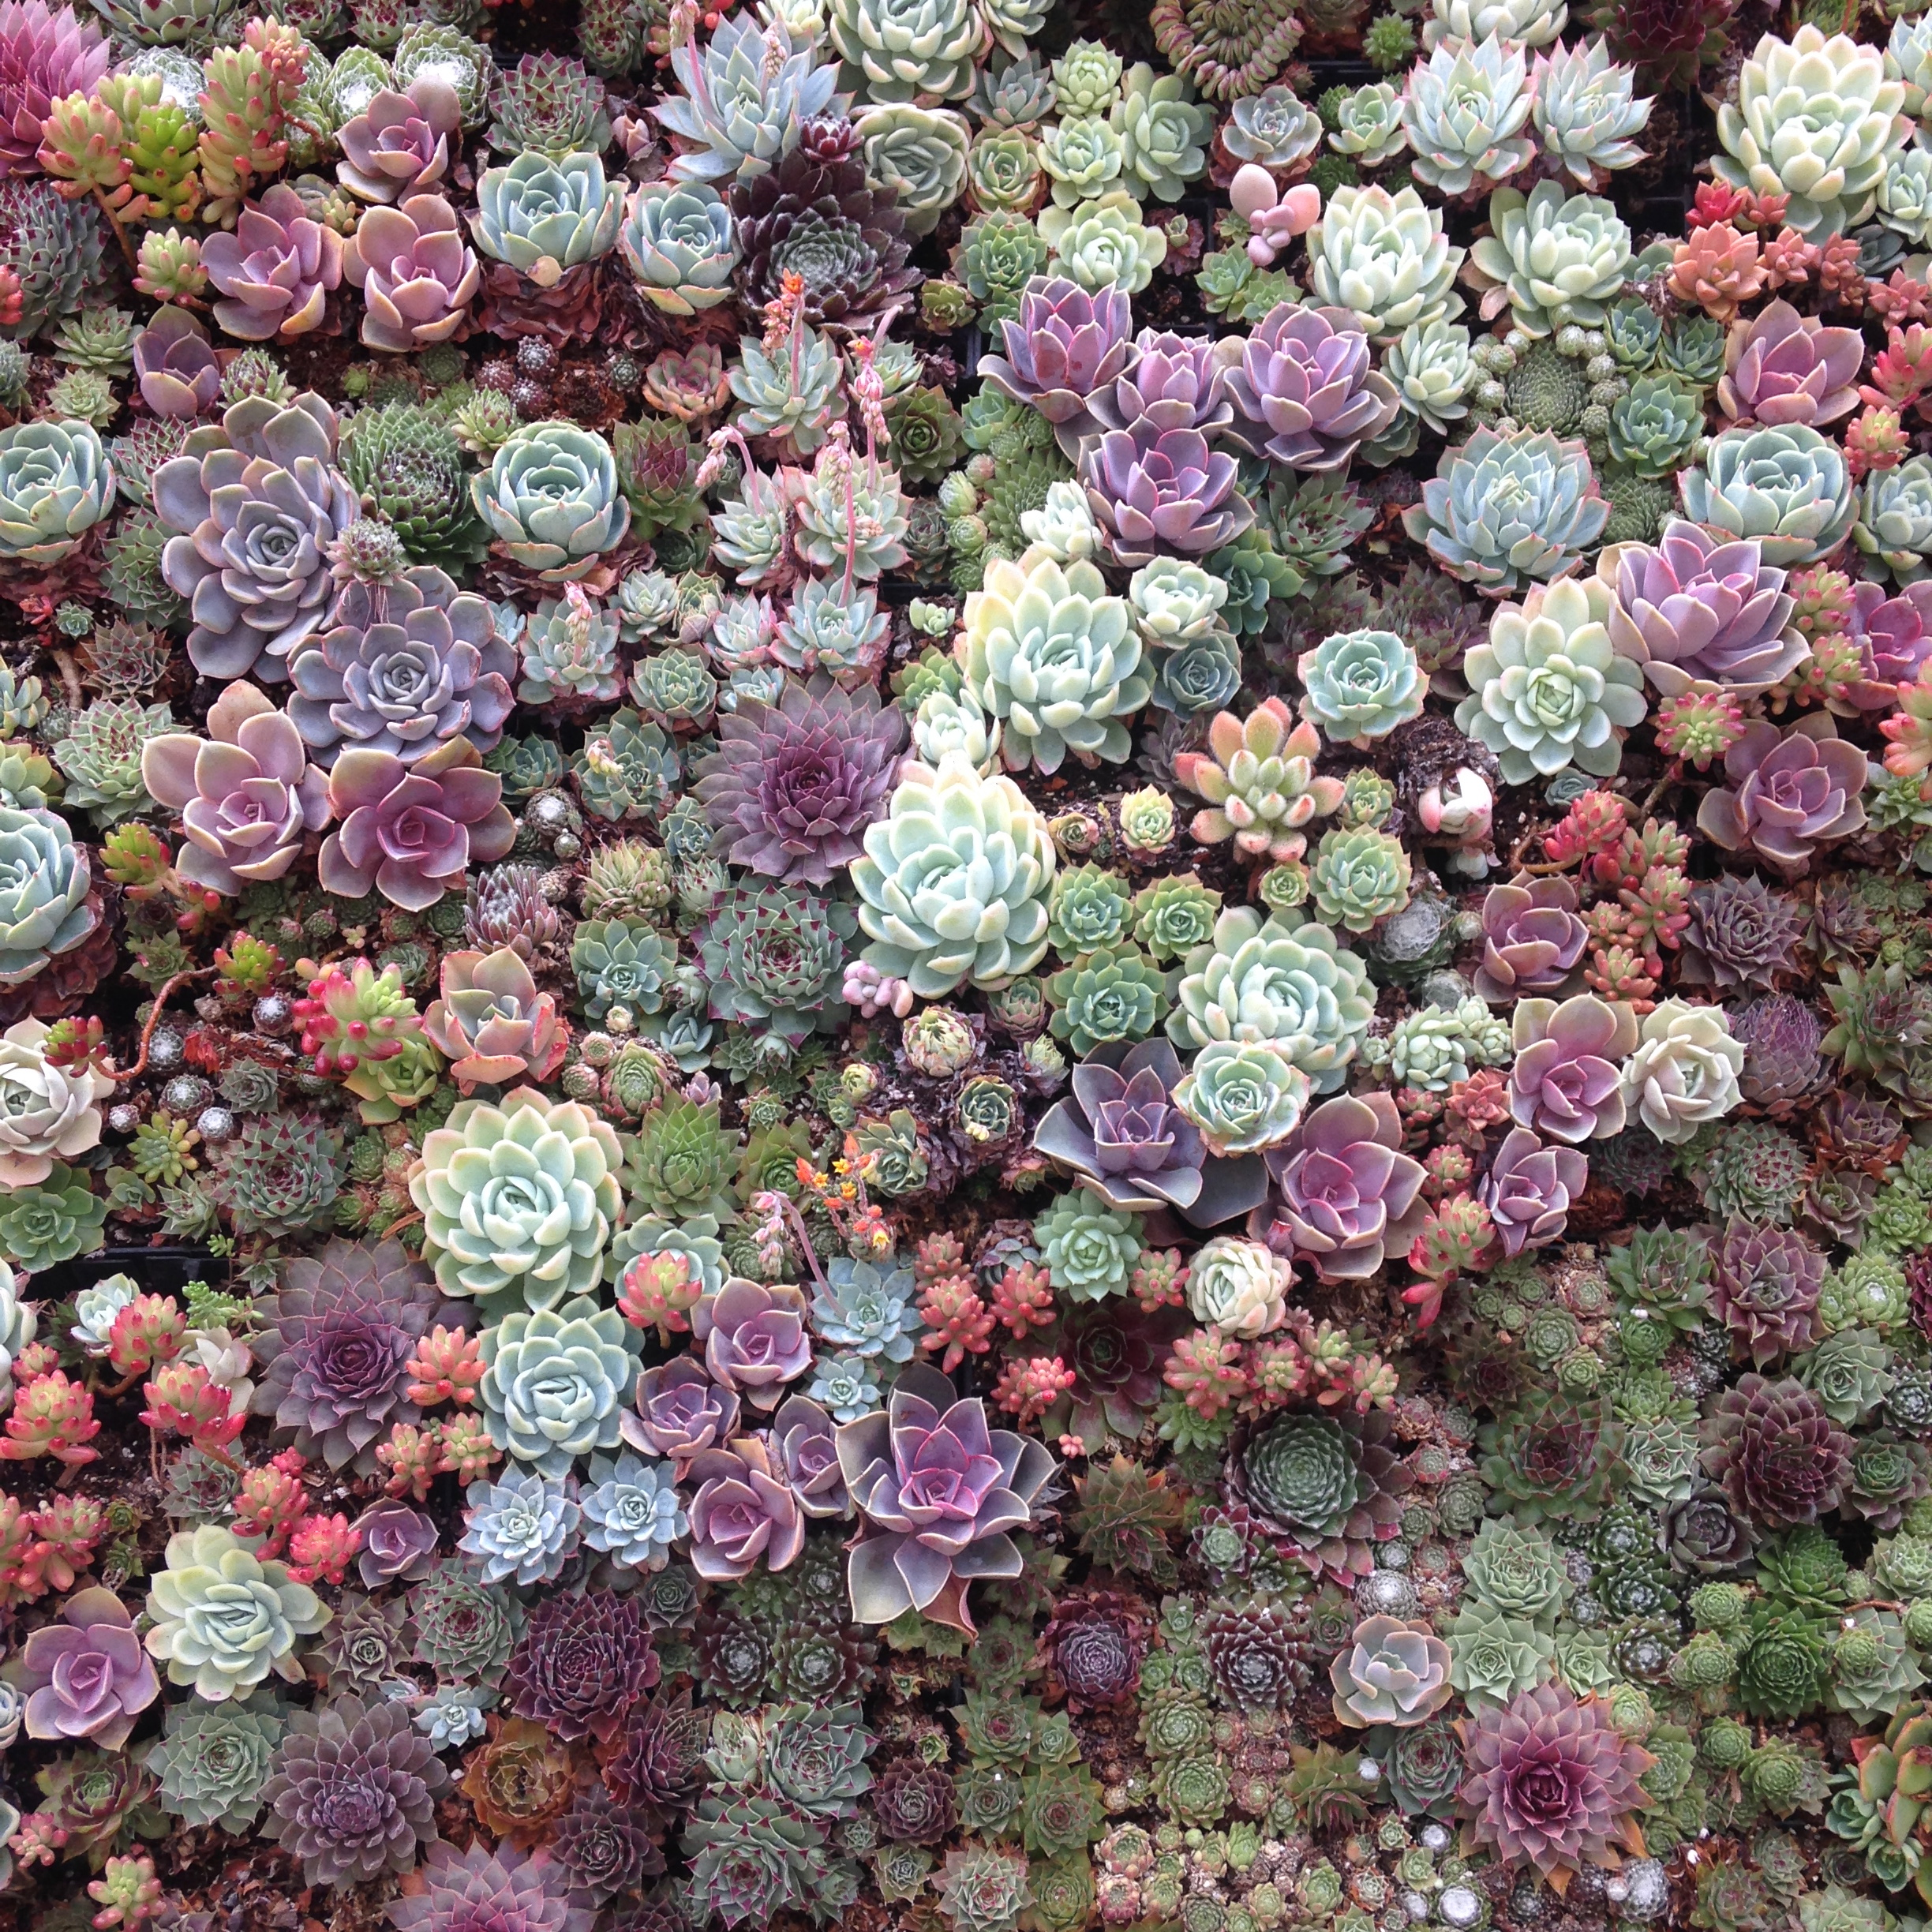 Succulent Galore at Flora Grubbs